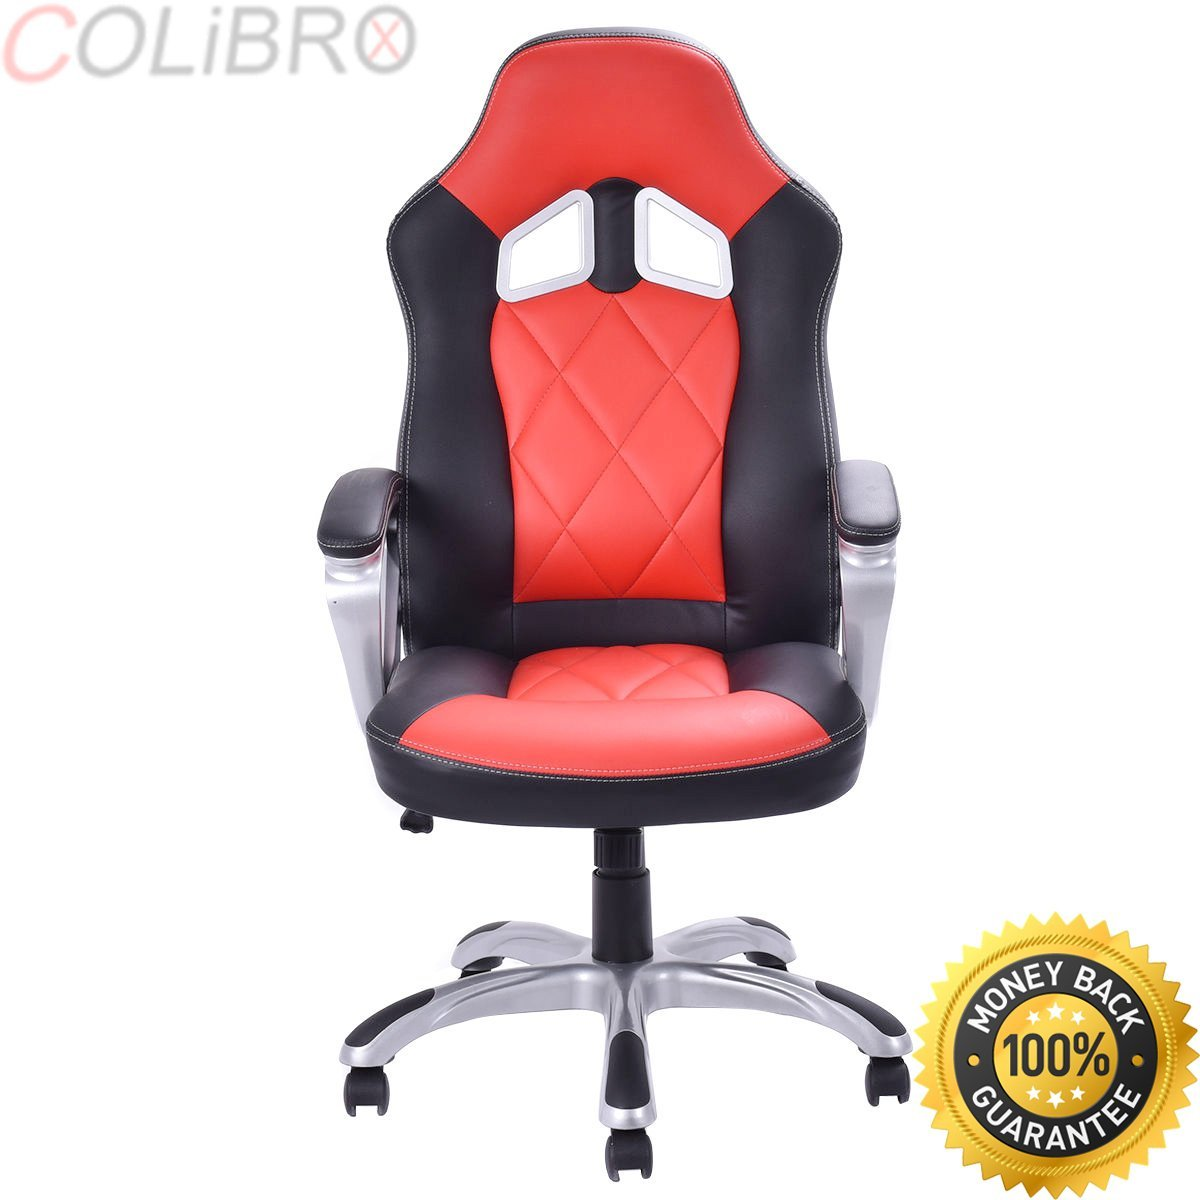 COLIBROX--High Back Racing Style Bucket Seat Gaming Chair Swivel Office Desk Task Red New. new high back racing car style bucket seat office desk chair gaming chair. best amazon race car office chair.